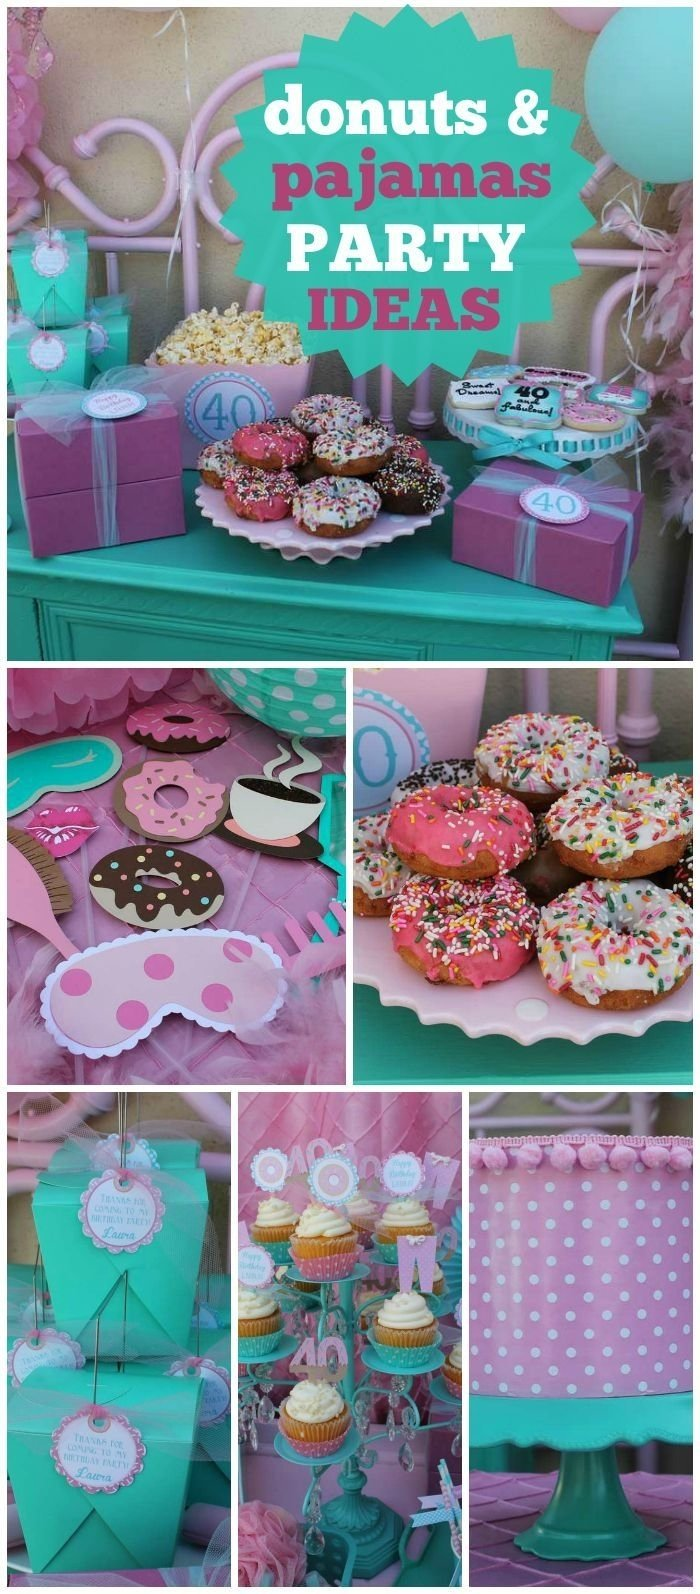 10 Amazing Pajama Party Ideas For Kids donuts pajamas birthday lauras 40th donuts pjs bash 2 2020